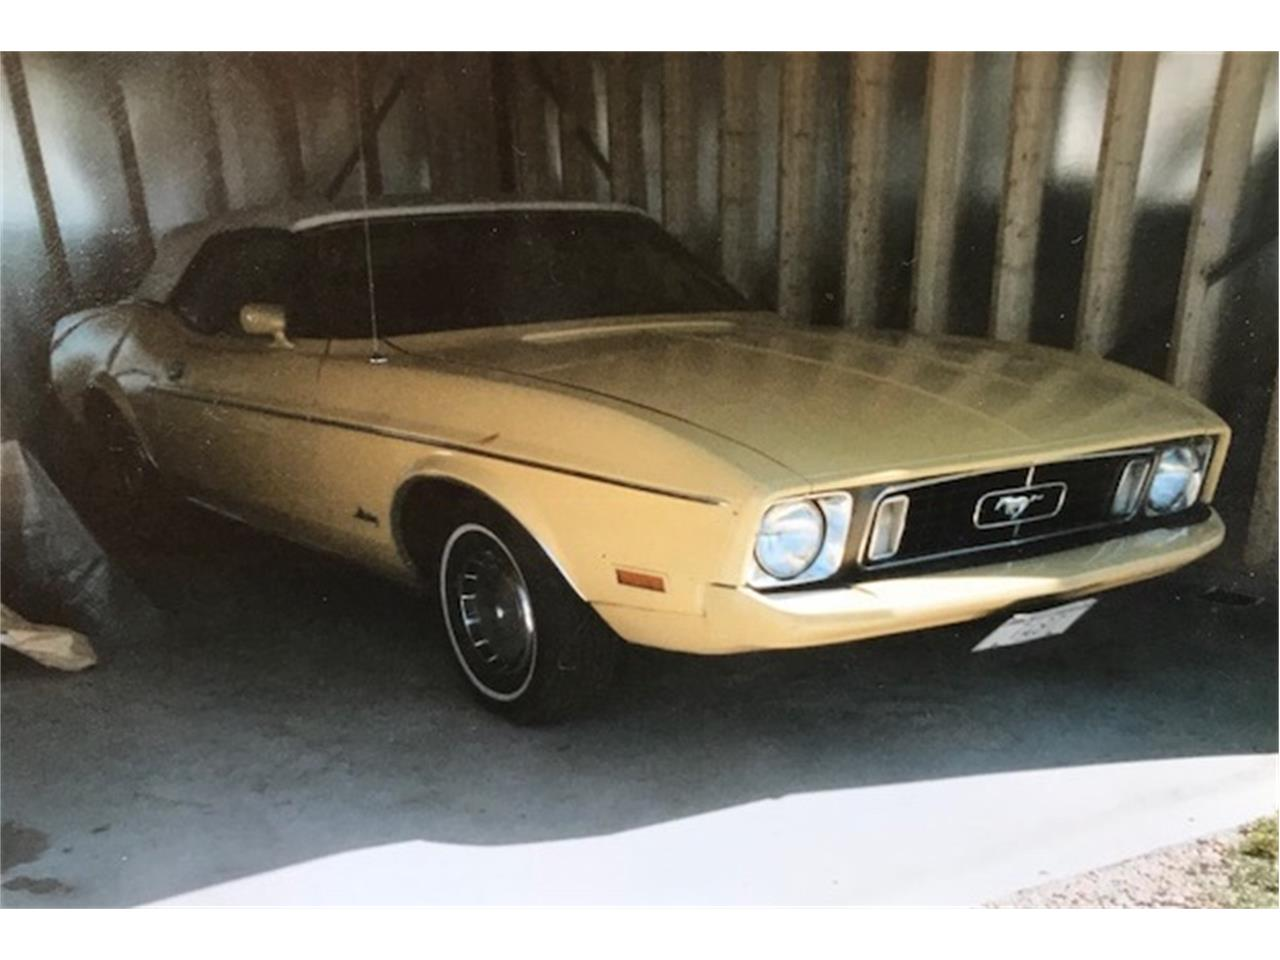 1973 Ford Mustang For Sale Cc 1030353 Fuel Filter Large Picture Of 73 M30x